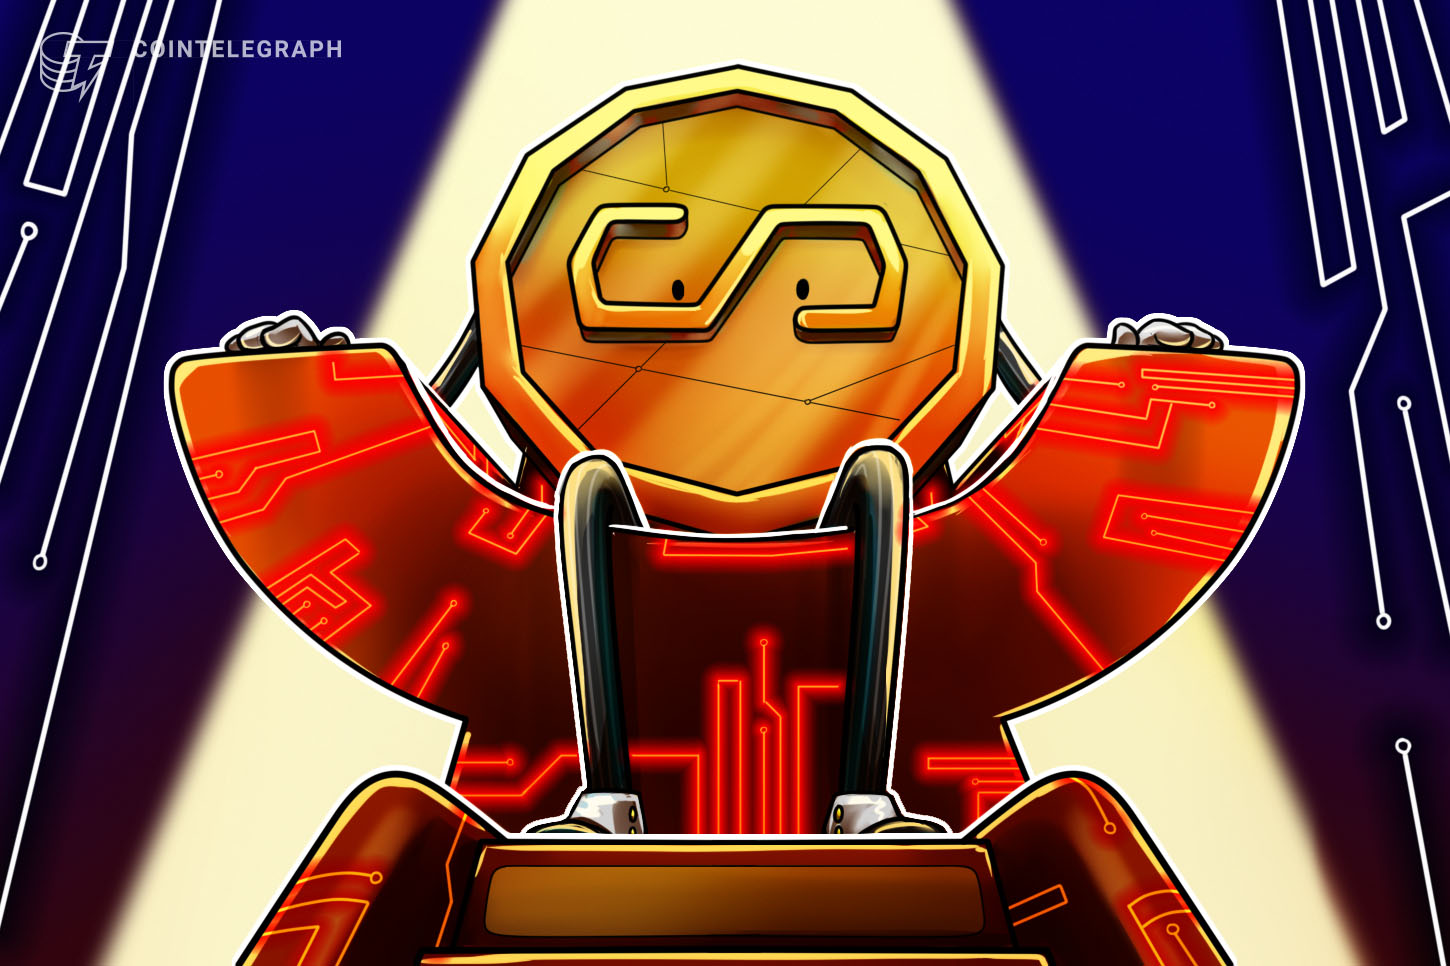 Stablecoin growth could affect credit markets, rating agency warns